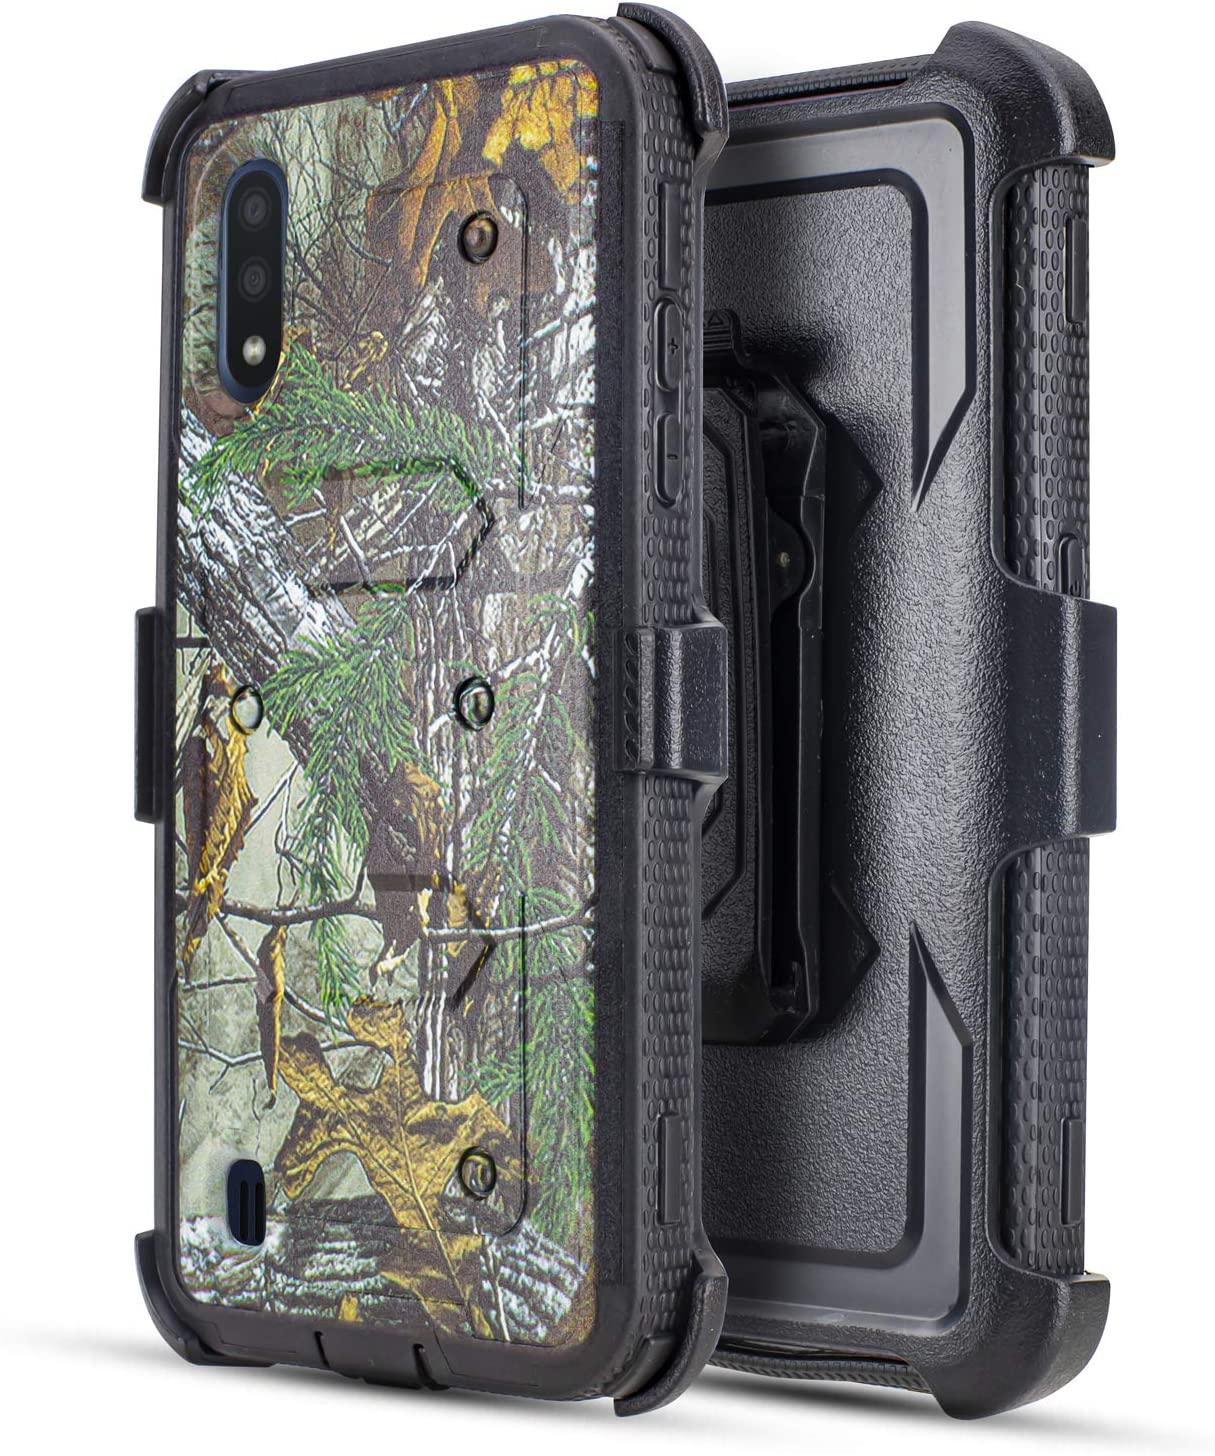 Compatible for Samsung Galaxy A01 Belt Clip Case, Jackpot Wireless Case Built-in [Screen Protector] Heavy Duty Holster Cover Phone Case [Belt Clip][Kickstand] (Camo)